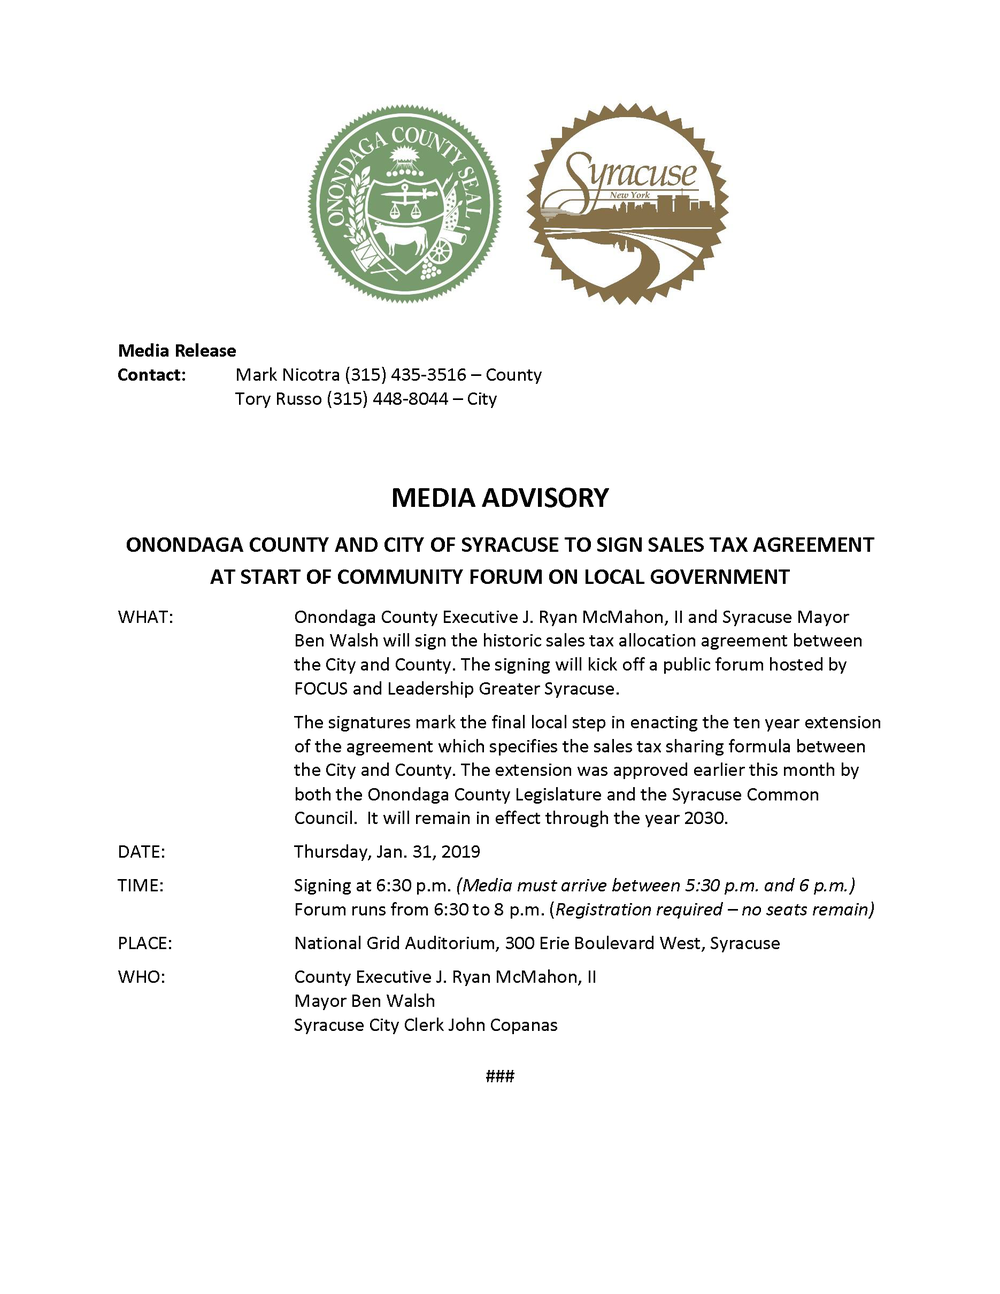 2019 01 31 MEDIA ADVISORY Onondaga County and City of Syracuse Sign Sales Tax Agreement.png